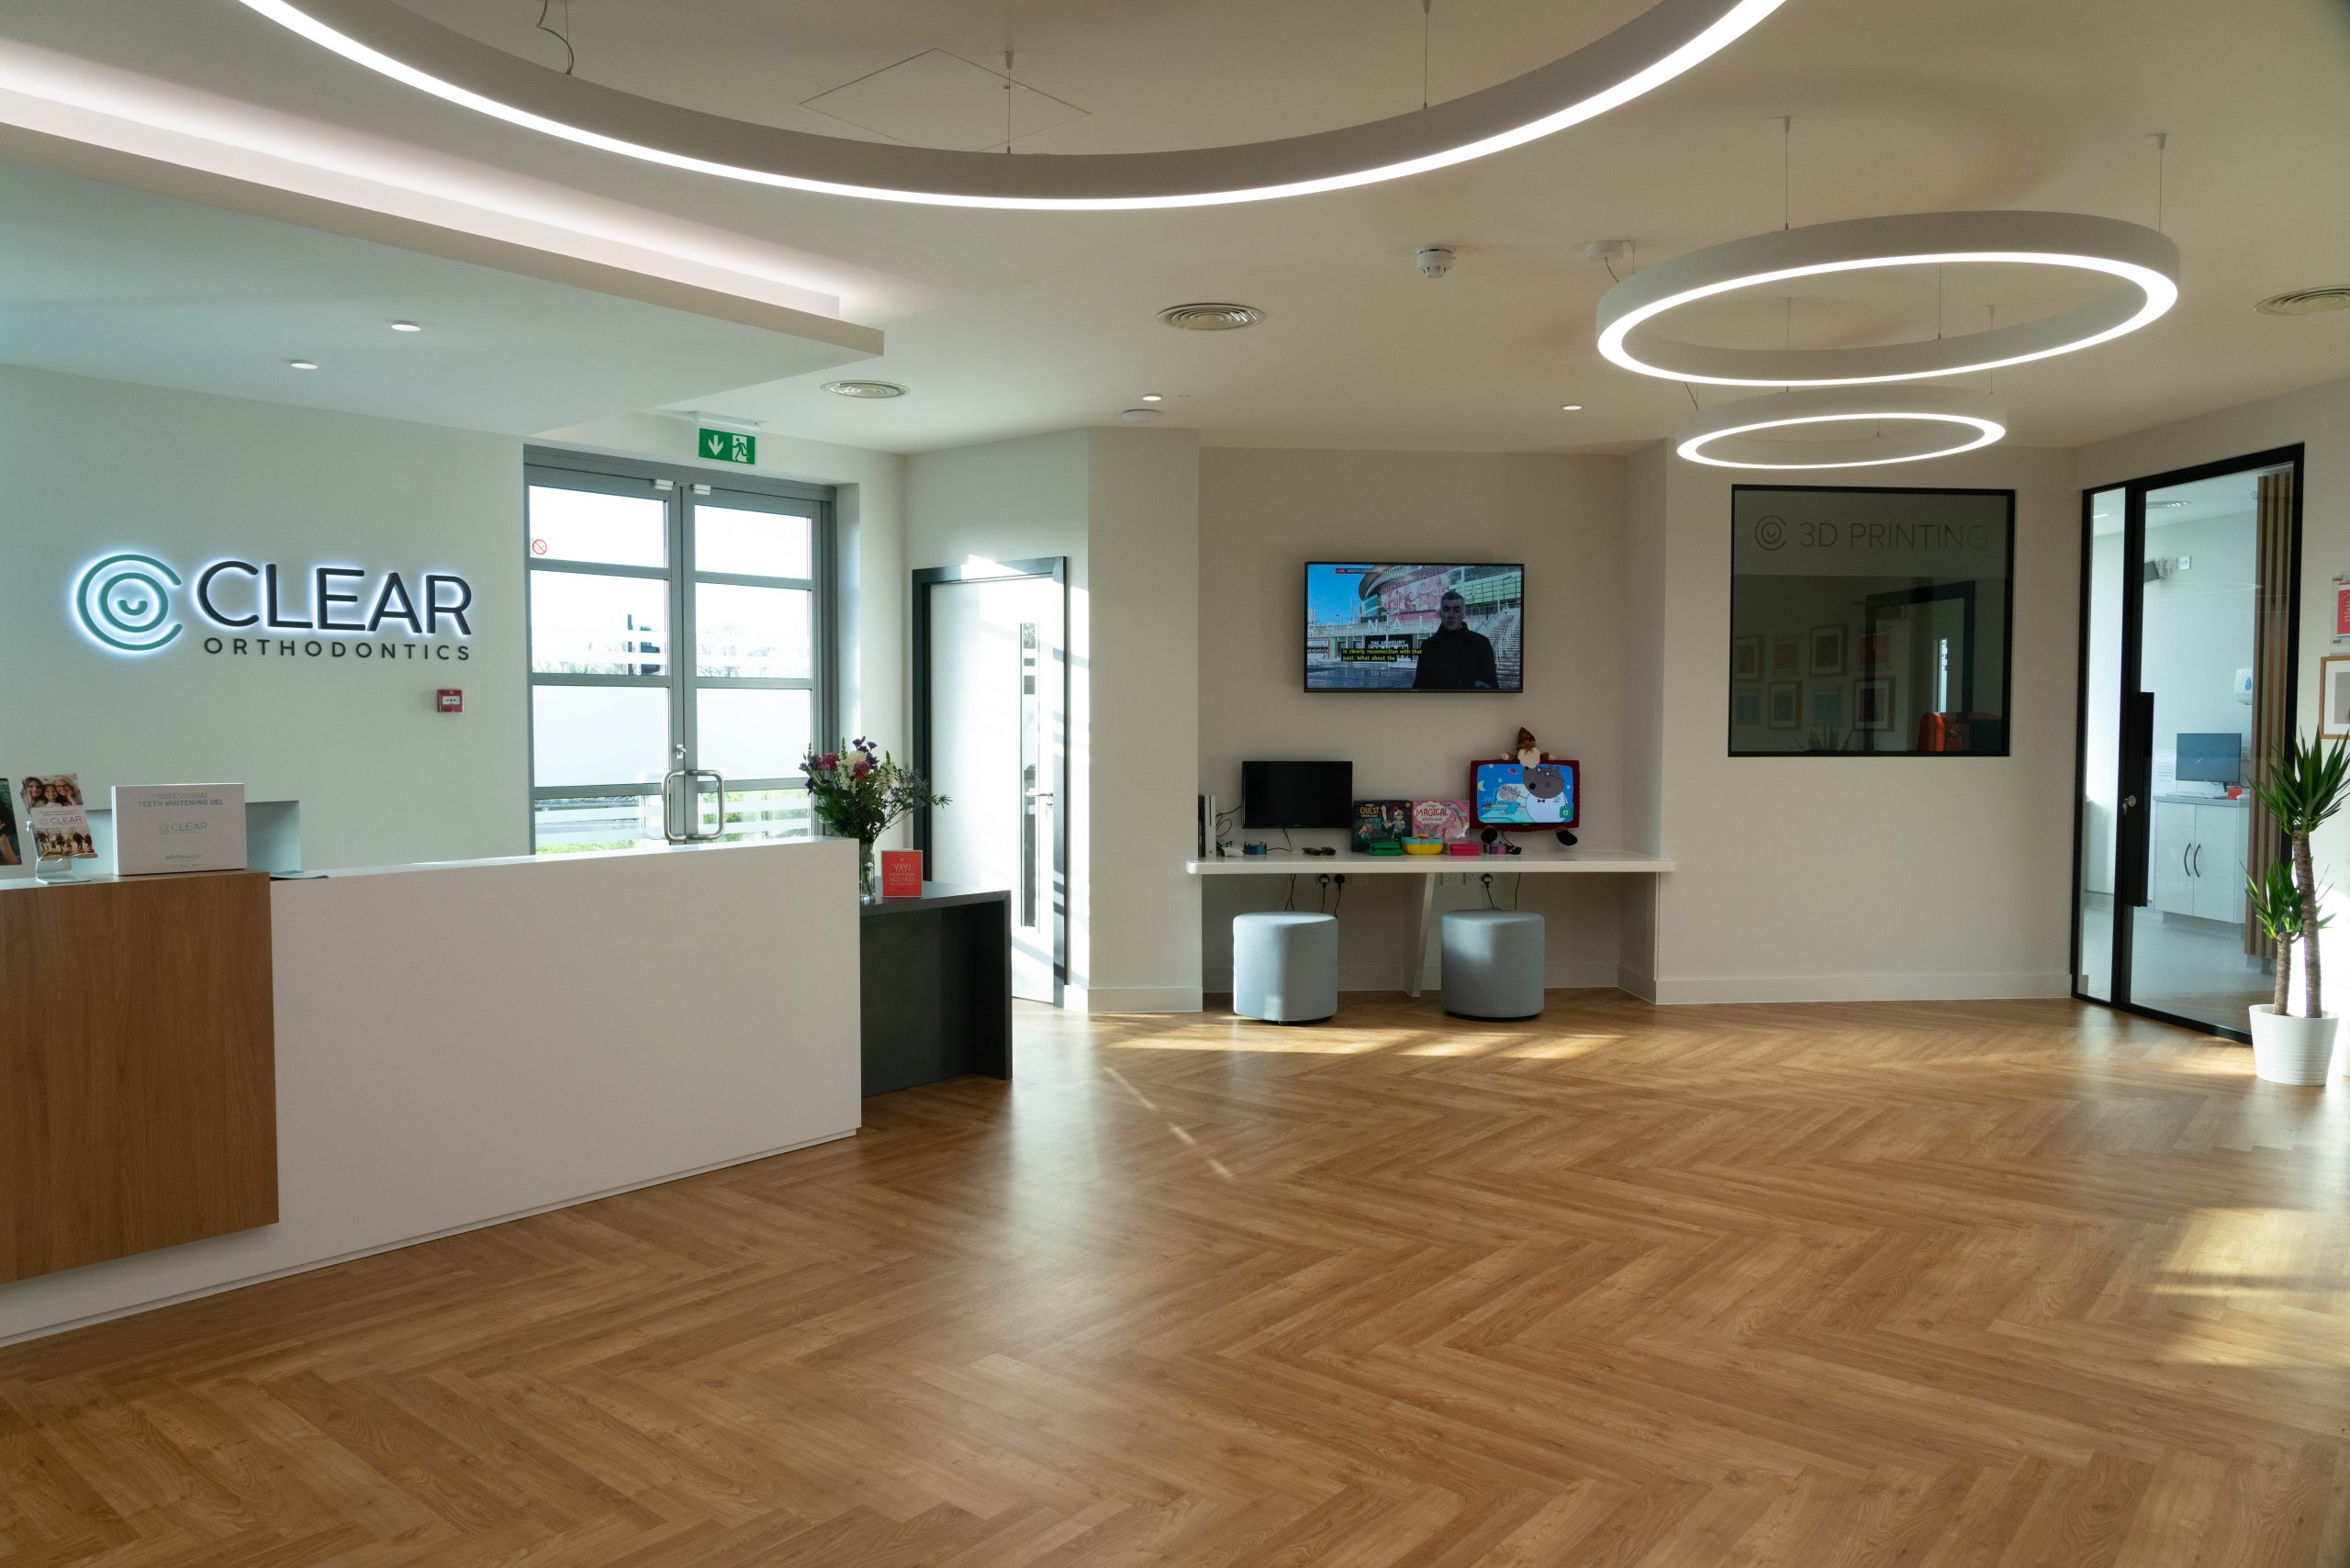 Clear Orthodontics – Completed Project